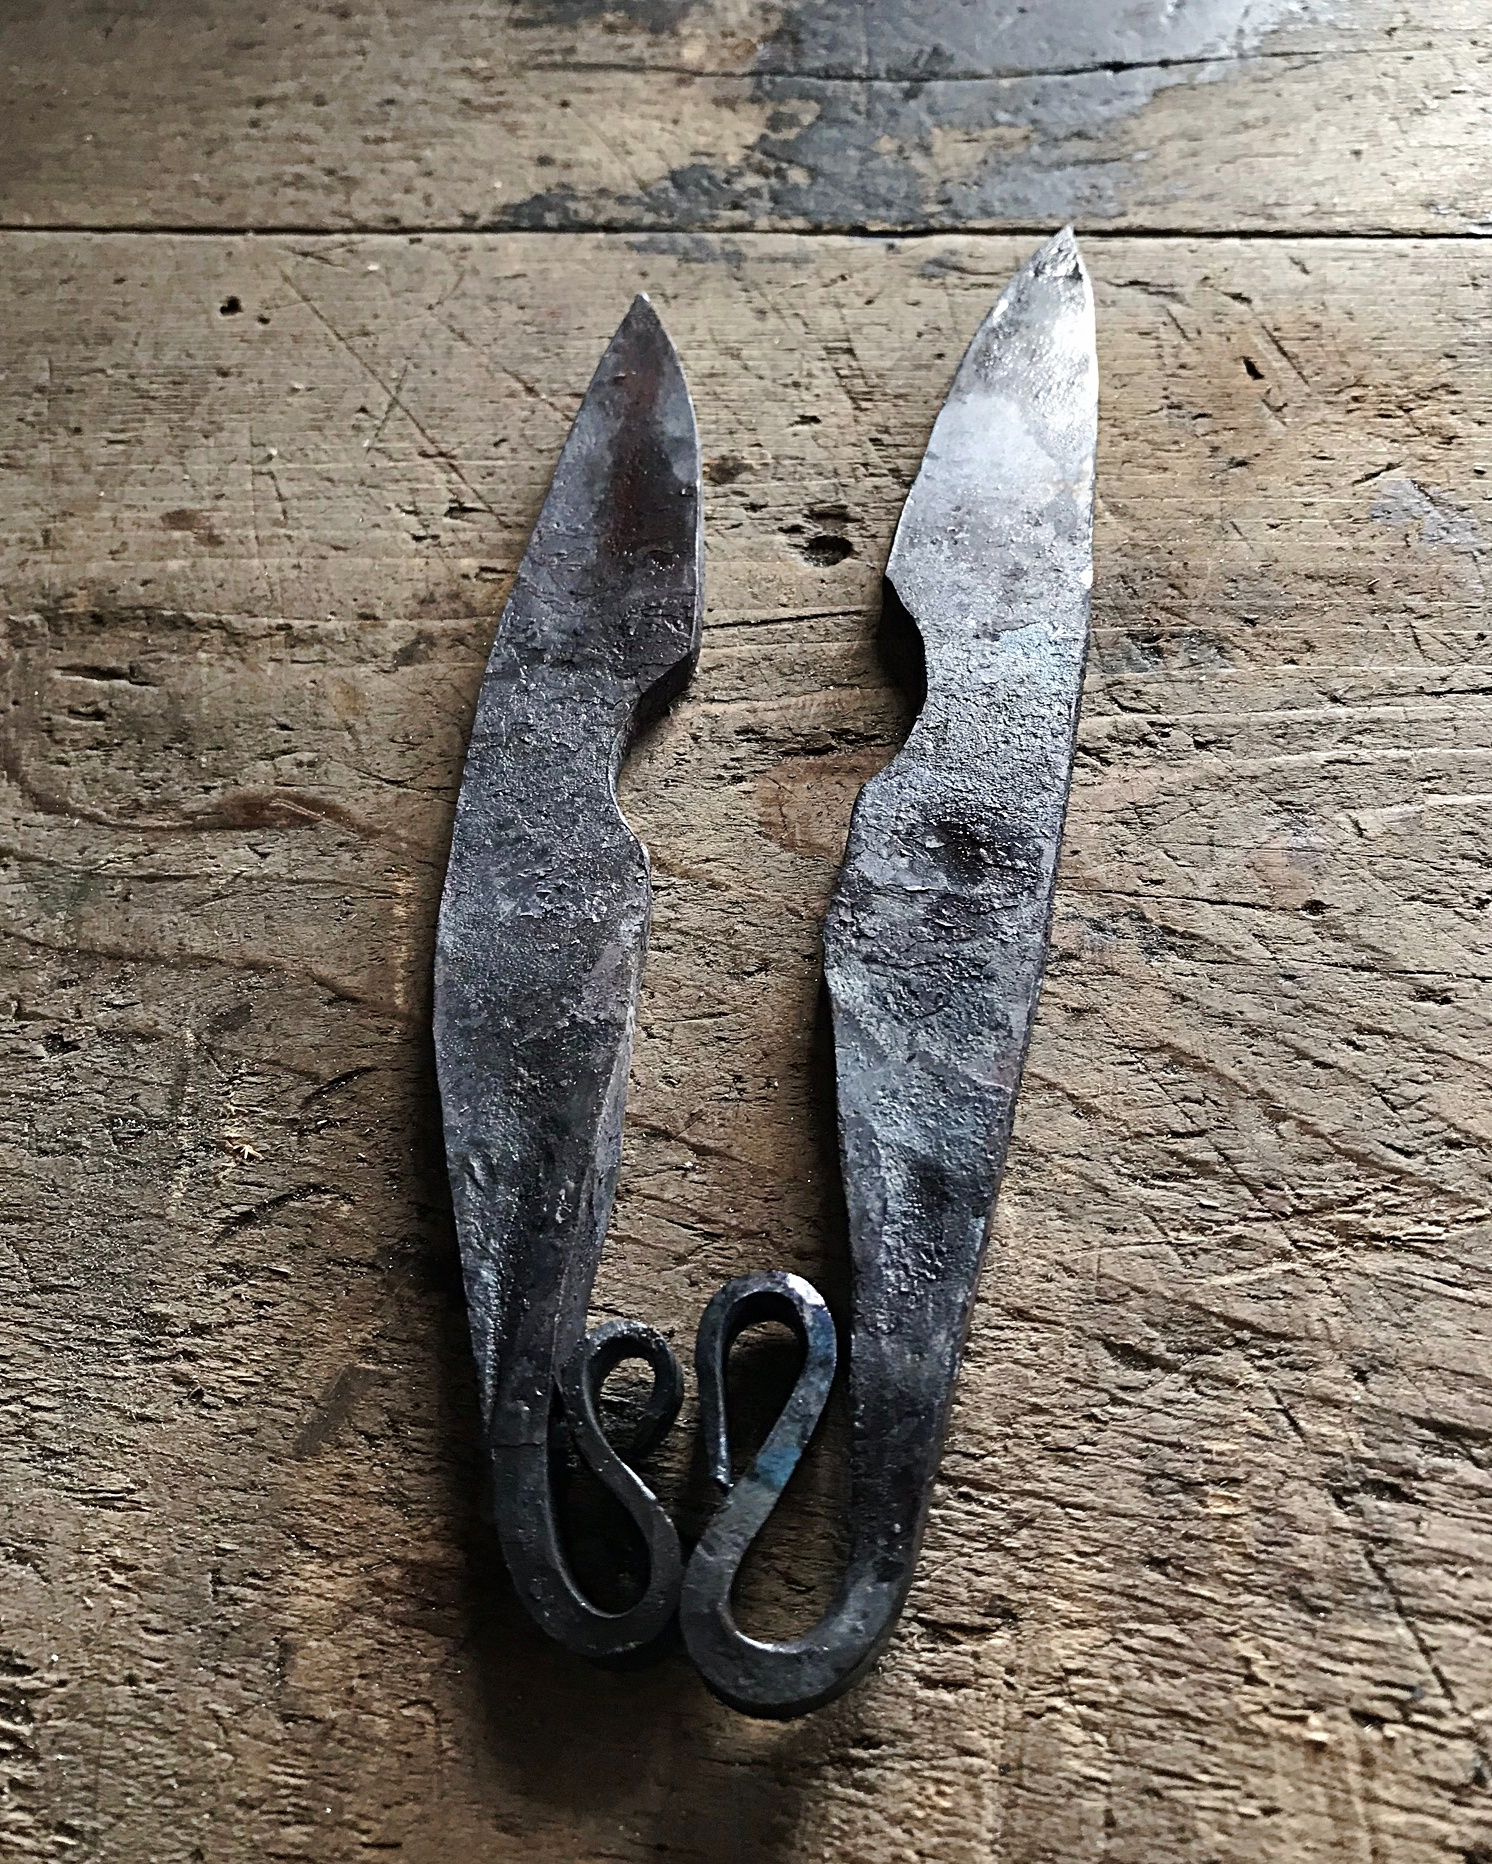 Two unfinished knives with snake tail handles forming a heart shape placed side by side on a wooden table.